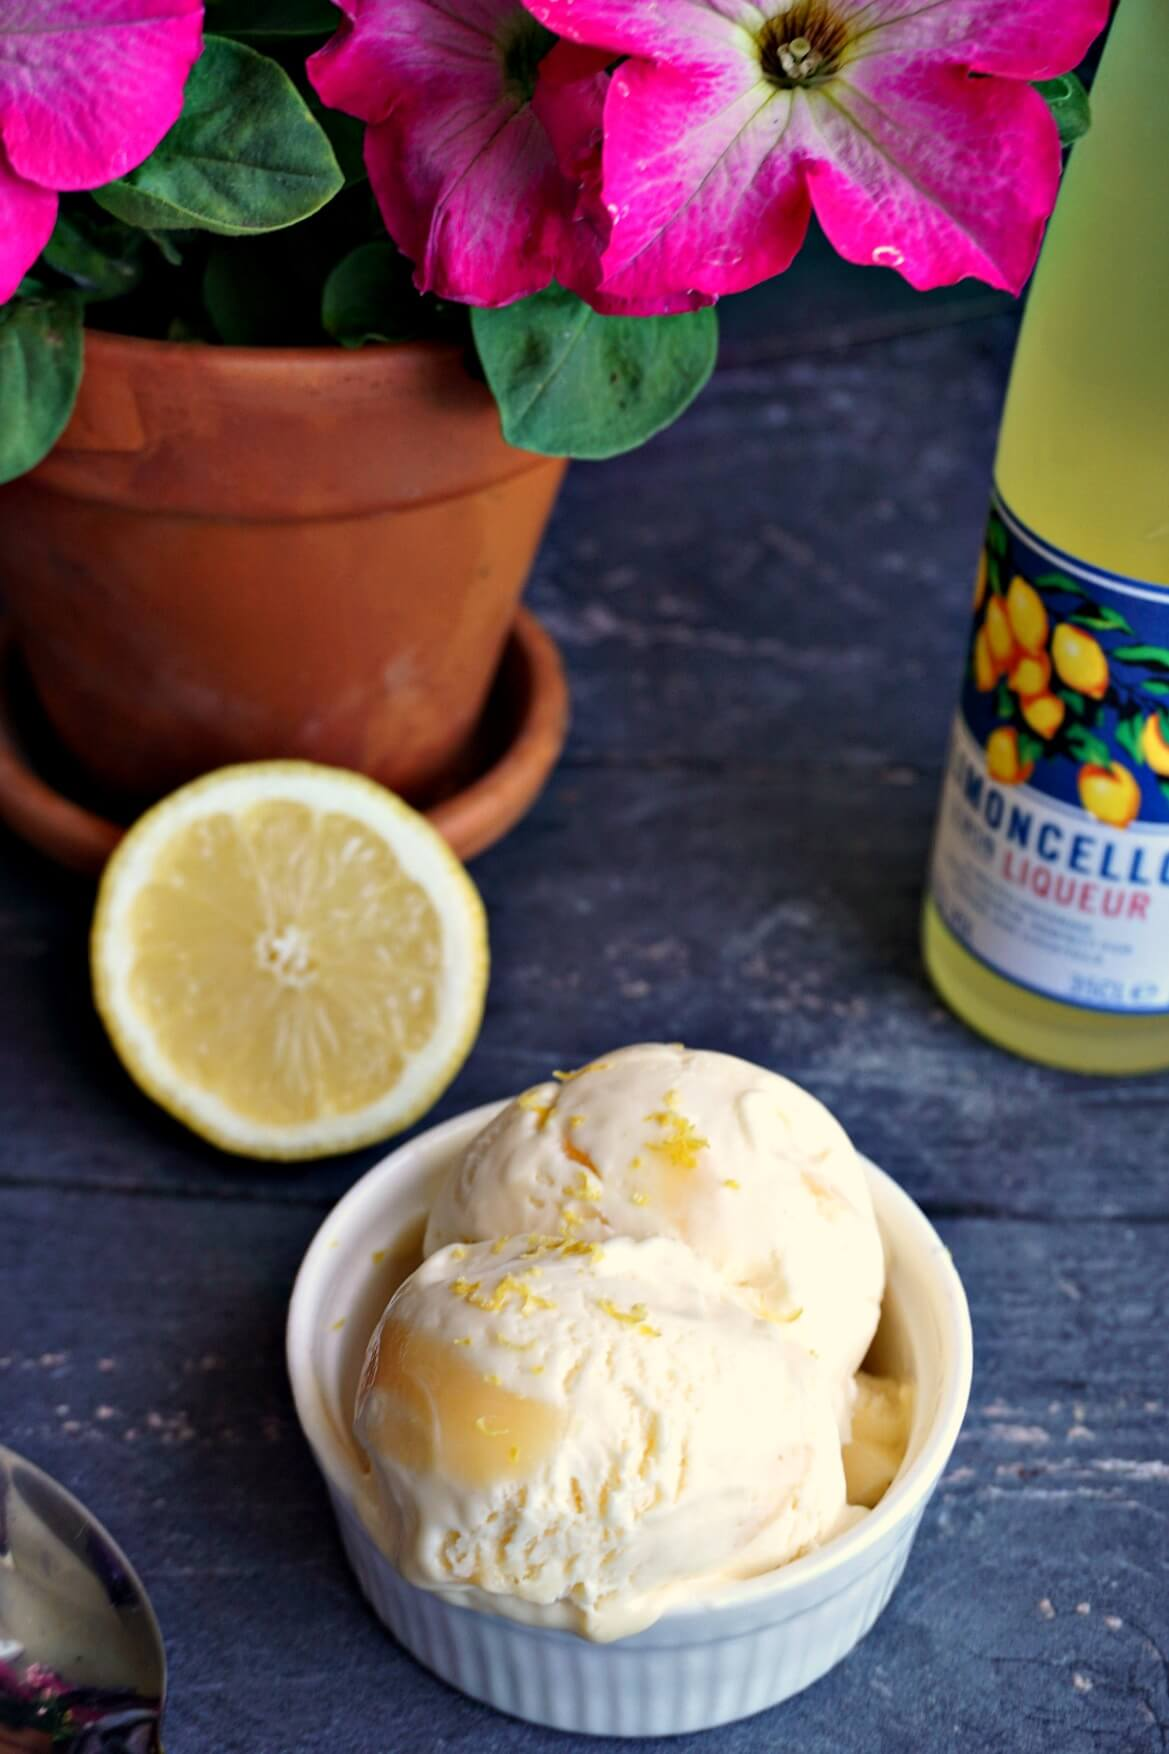 A white bowl with 2 ice cream wcoops, half a lemon, a bottle of limoncello and a pot of flowers